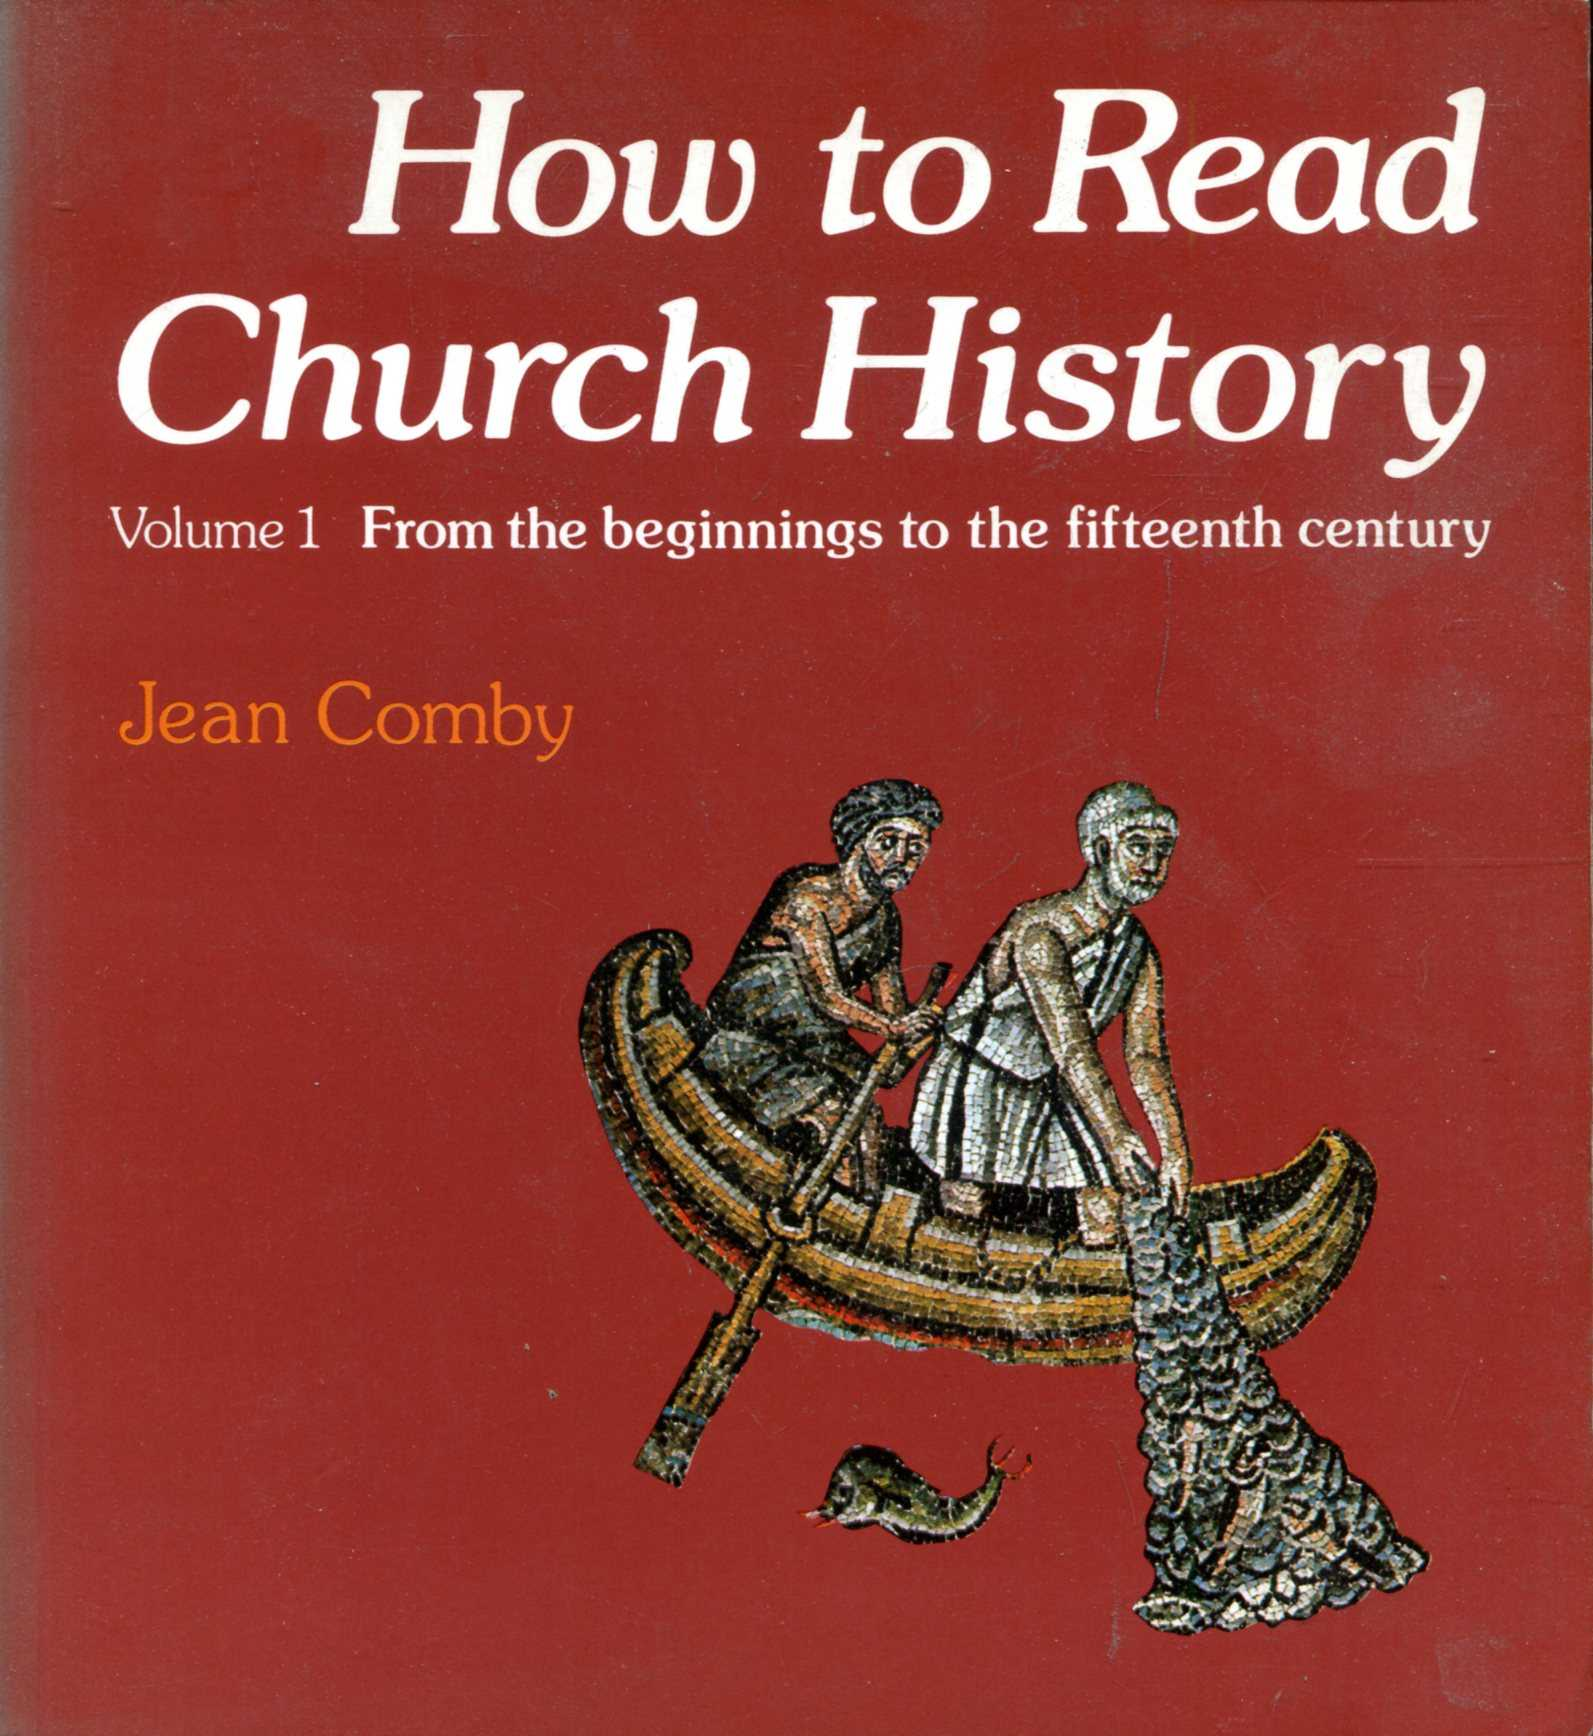 Image for How to Read Church History Volume One: From the beginnings to the fifteenth century (v. 1)